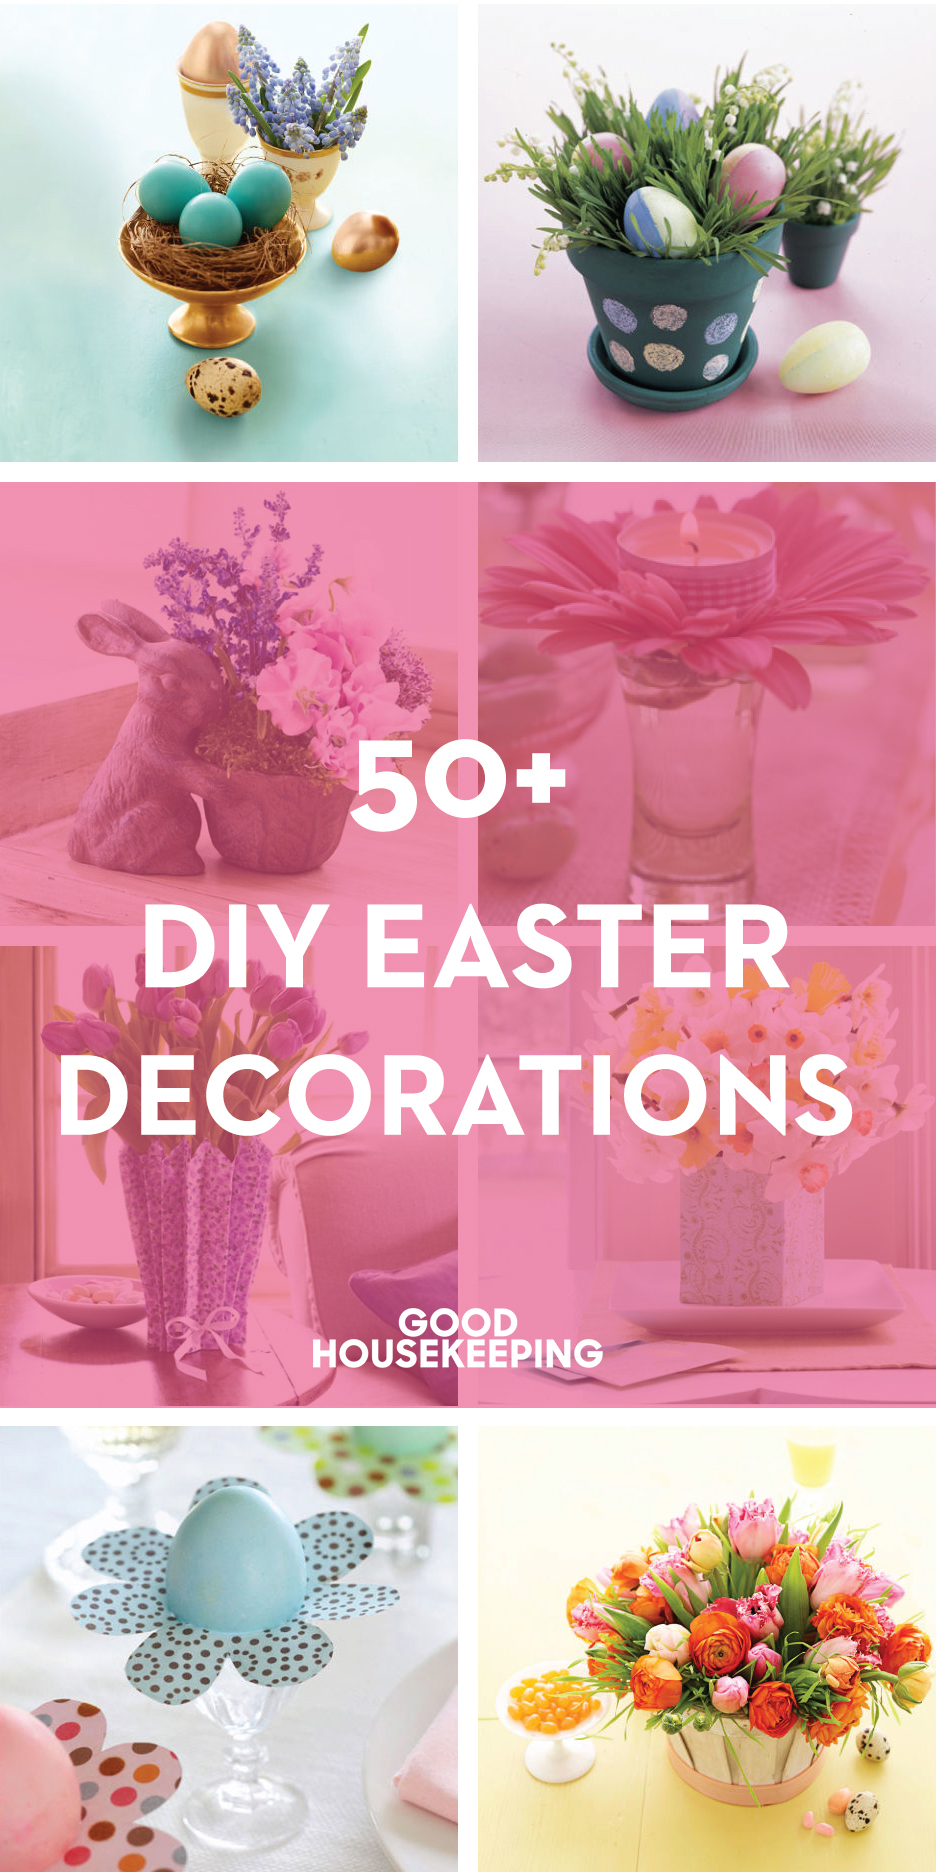 80 diy easter decorations ideas for homemade easter for Diy easter decorations home